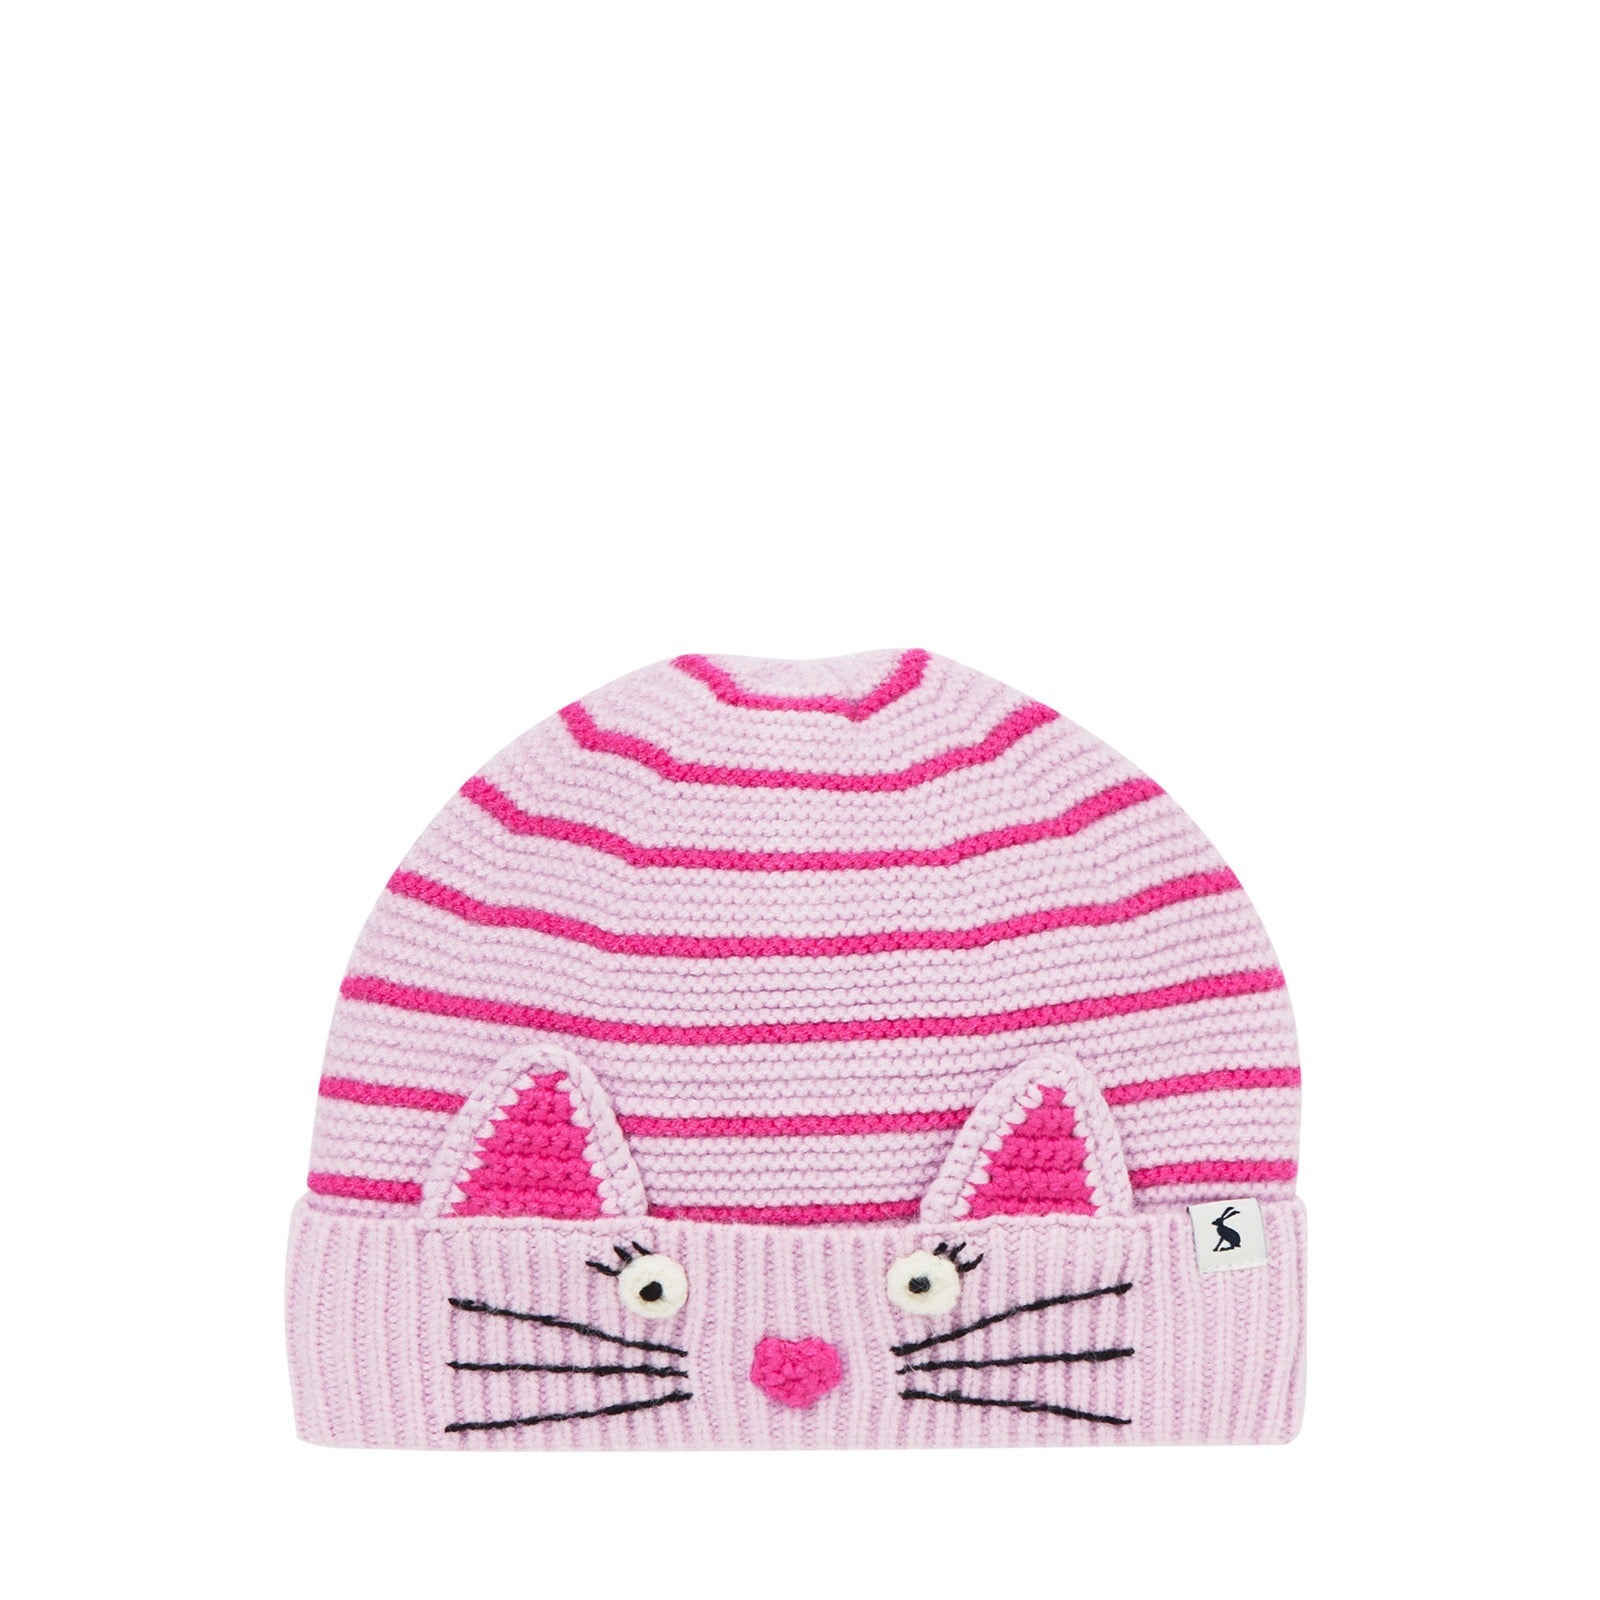 Joules Chummy Hat Lilac Cat 209516